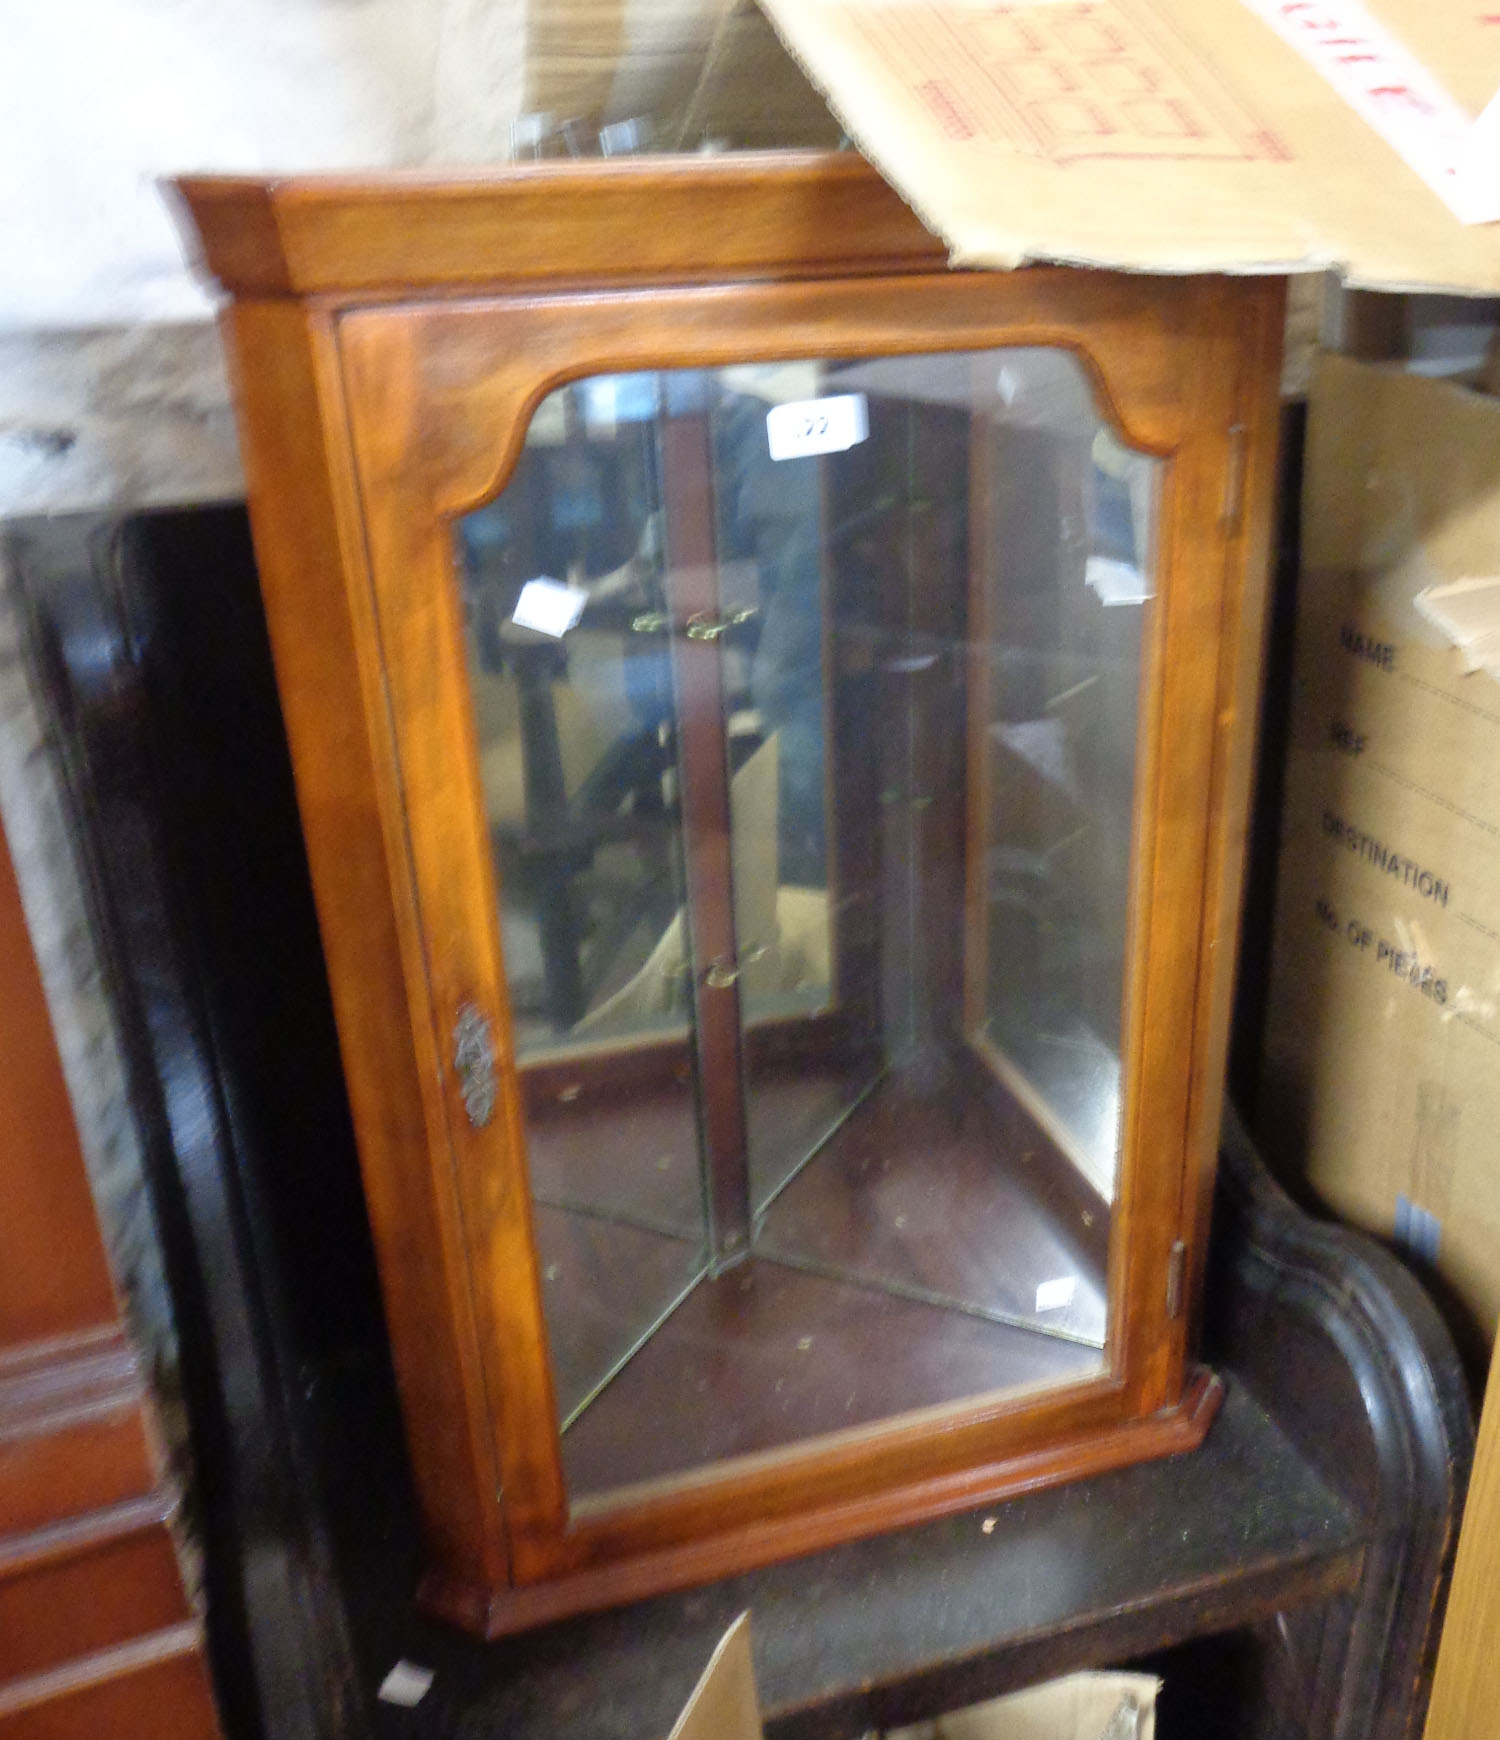 A small corner display cabinet with later light fittings